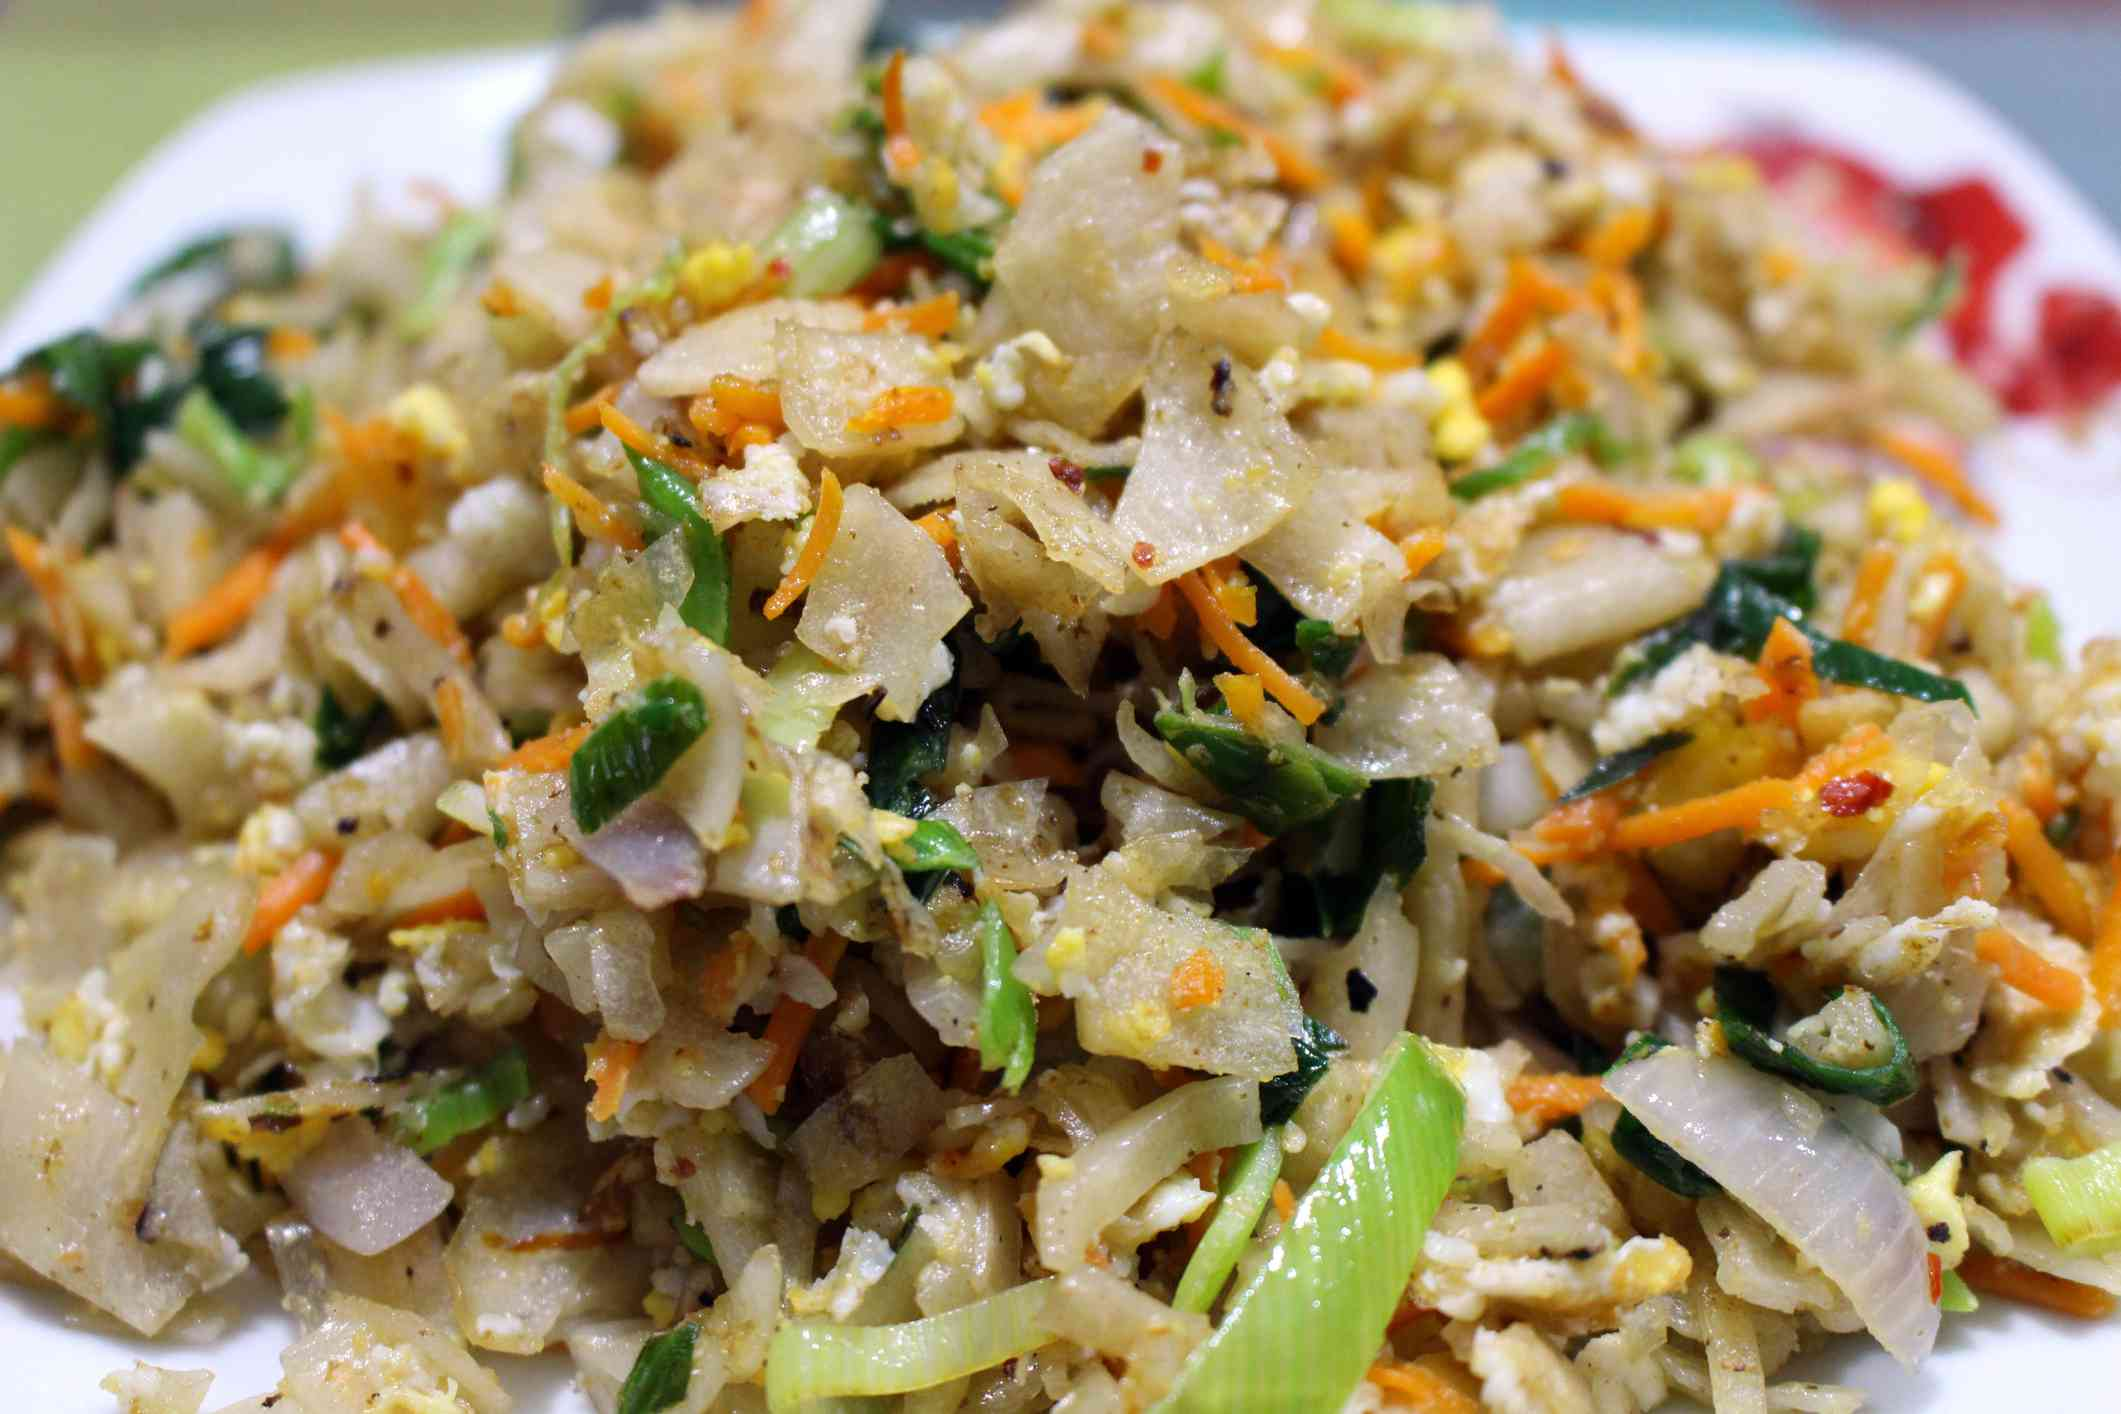 Kottu roti with onions, carrots, and scallions